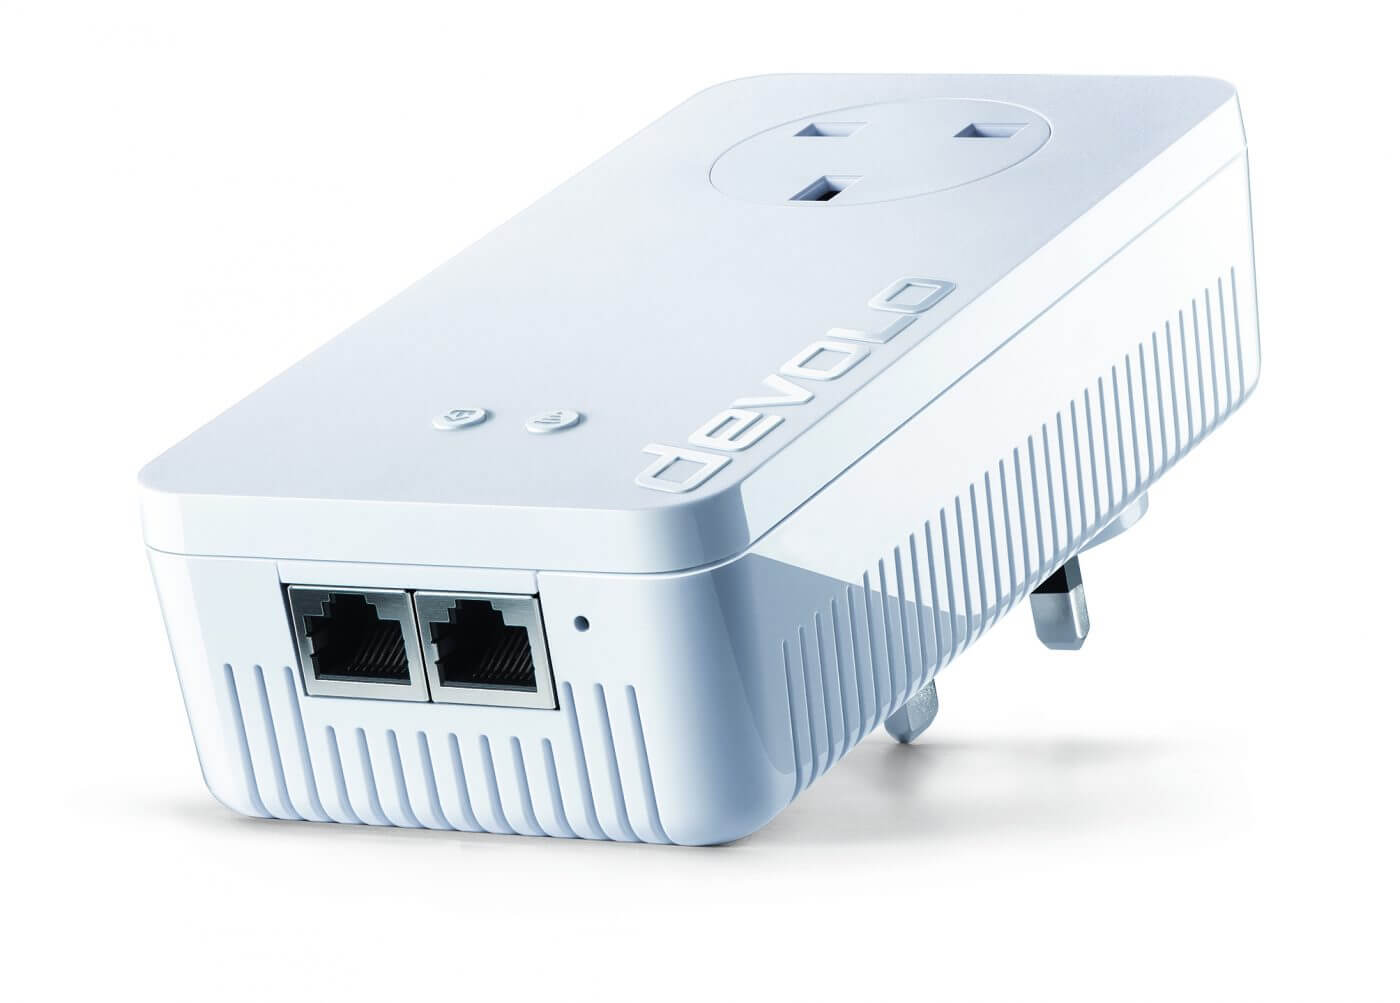 Devolo dLAN 1200 plus WiFi ac_productpicture_classic_sgl_uk_print_01